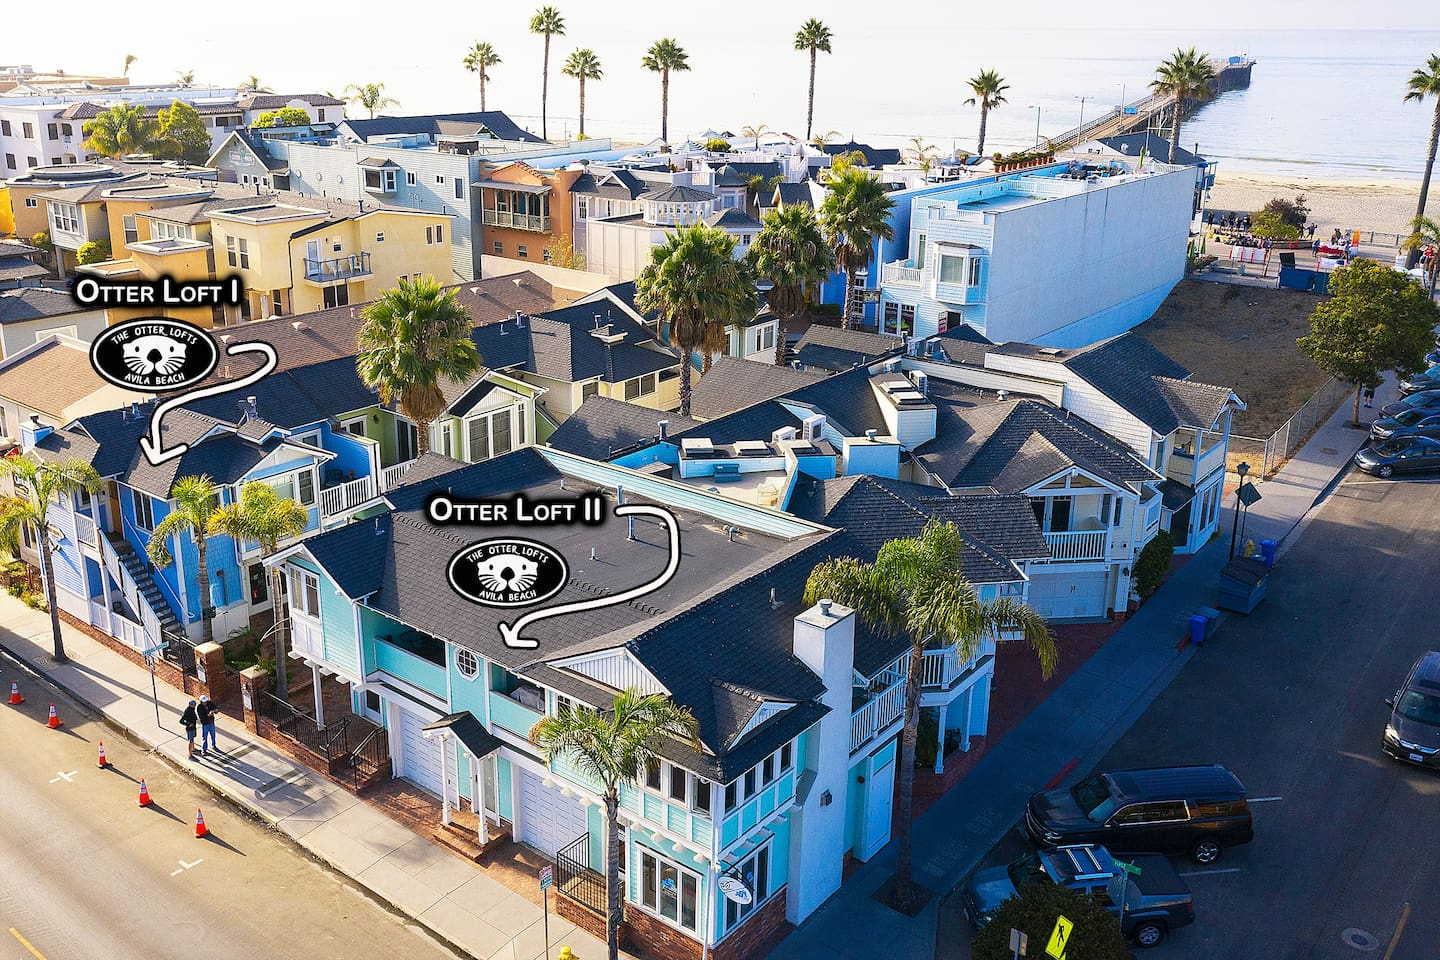 Otter Loft II is our 2 bedroom 2.5 bath corner condo in the heart of downtown Avila Beach! Amazing location just steps to the beach, boardwalk and pier. Bright and open end unit with 3 balconies and private double garage. Park and play!